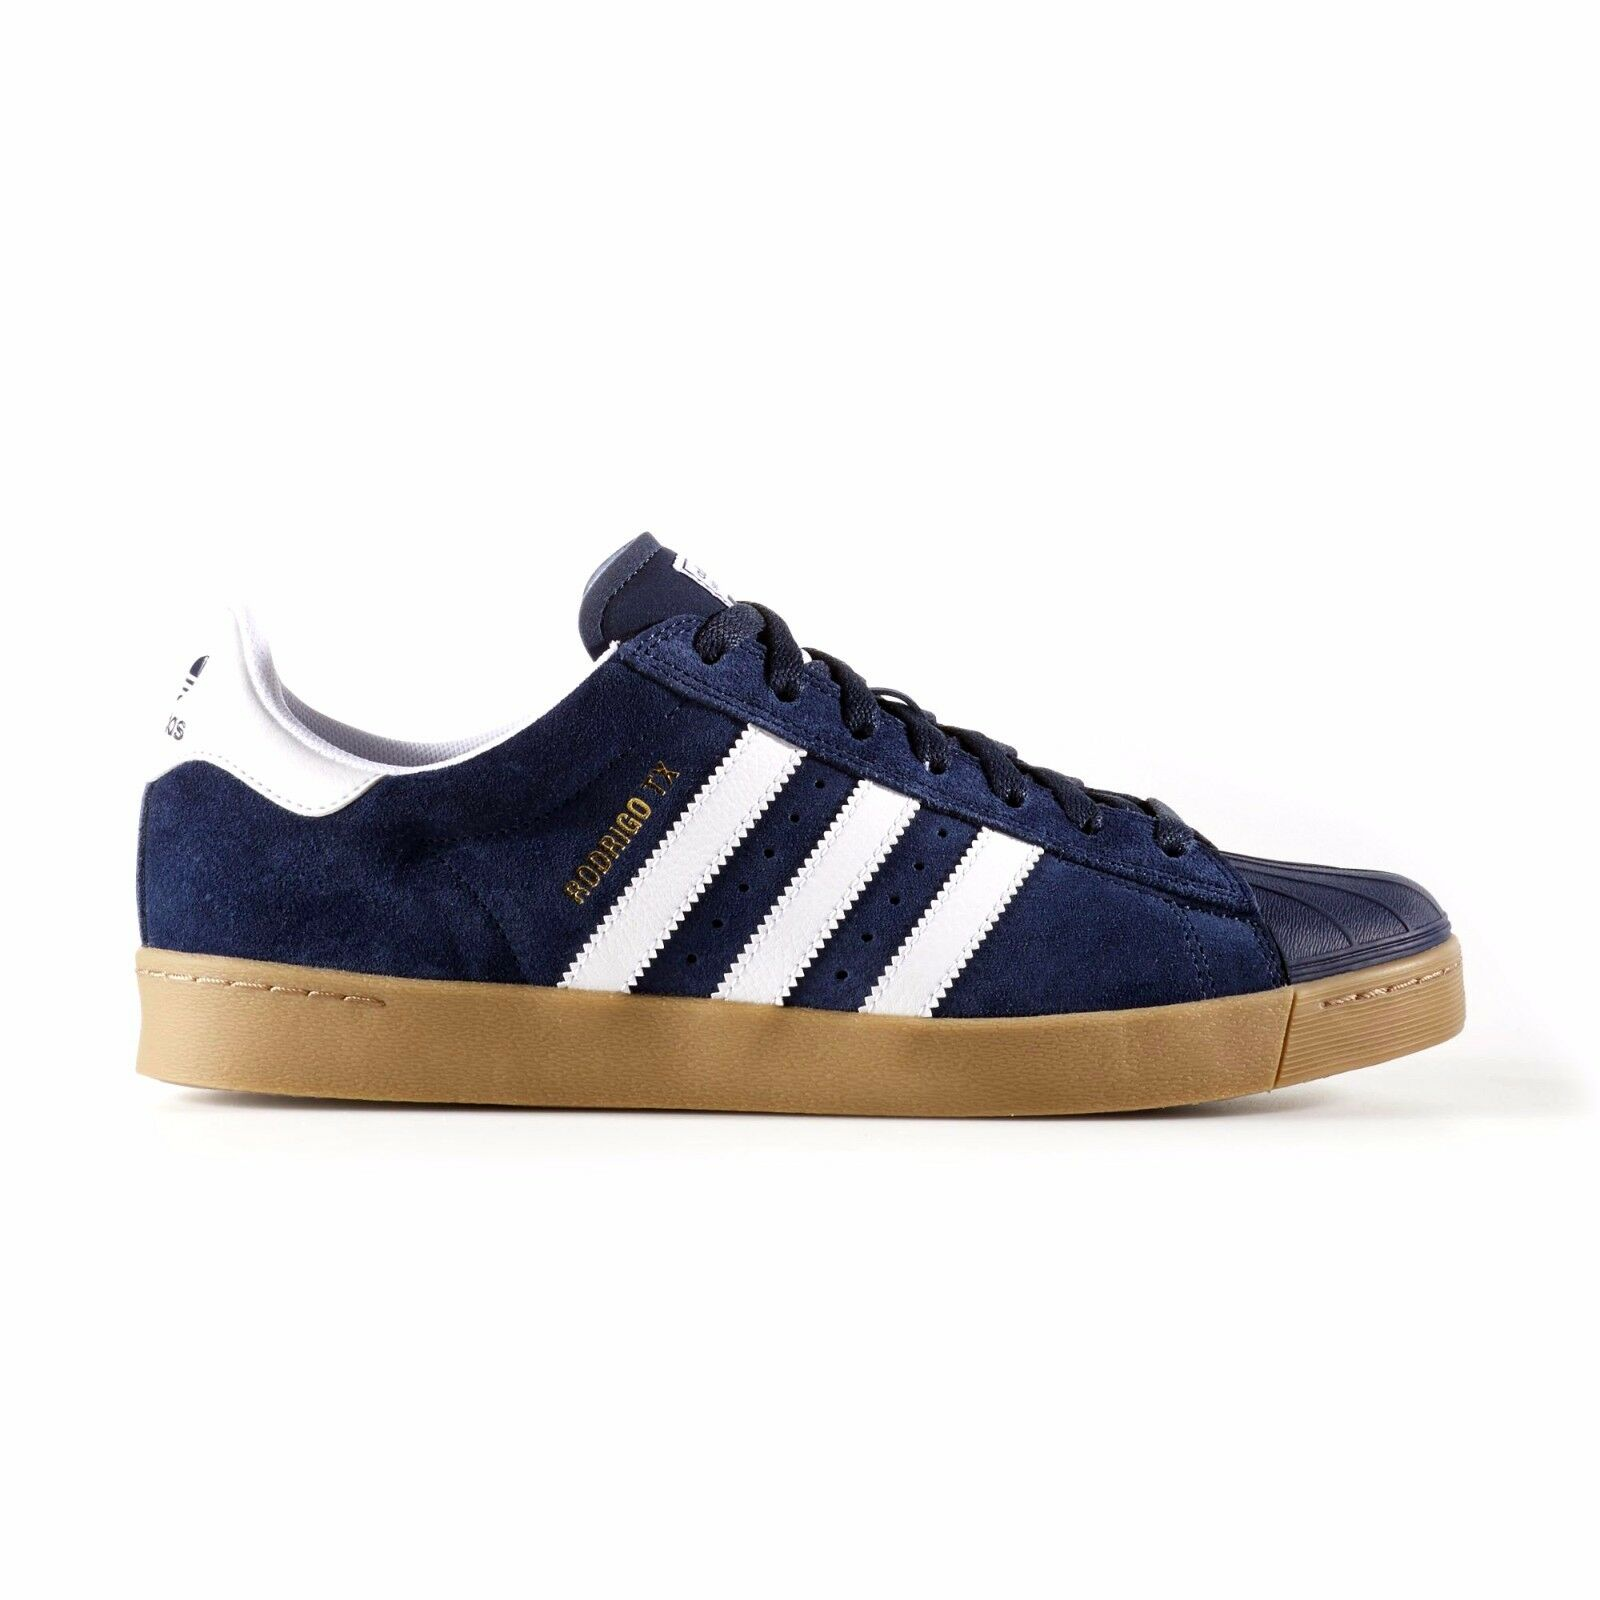 separation shoes 928ac da3dd Adidas - Superstar Vulc ADV - Rodrigo TX   B27391 Mens Skate Shoes - Navy